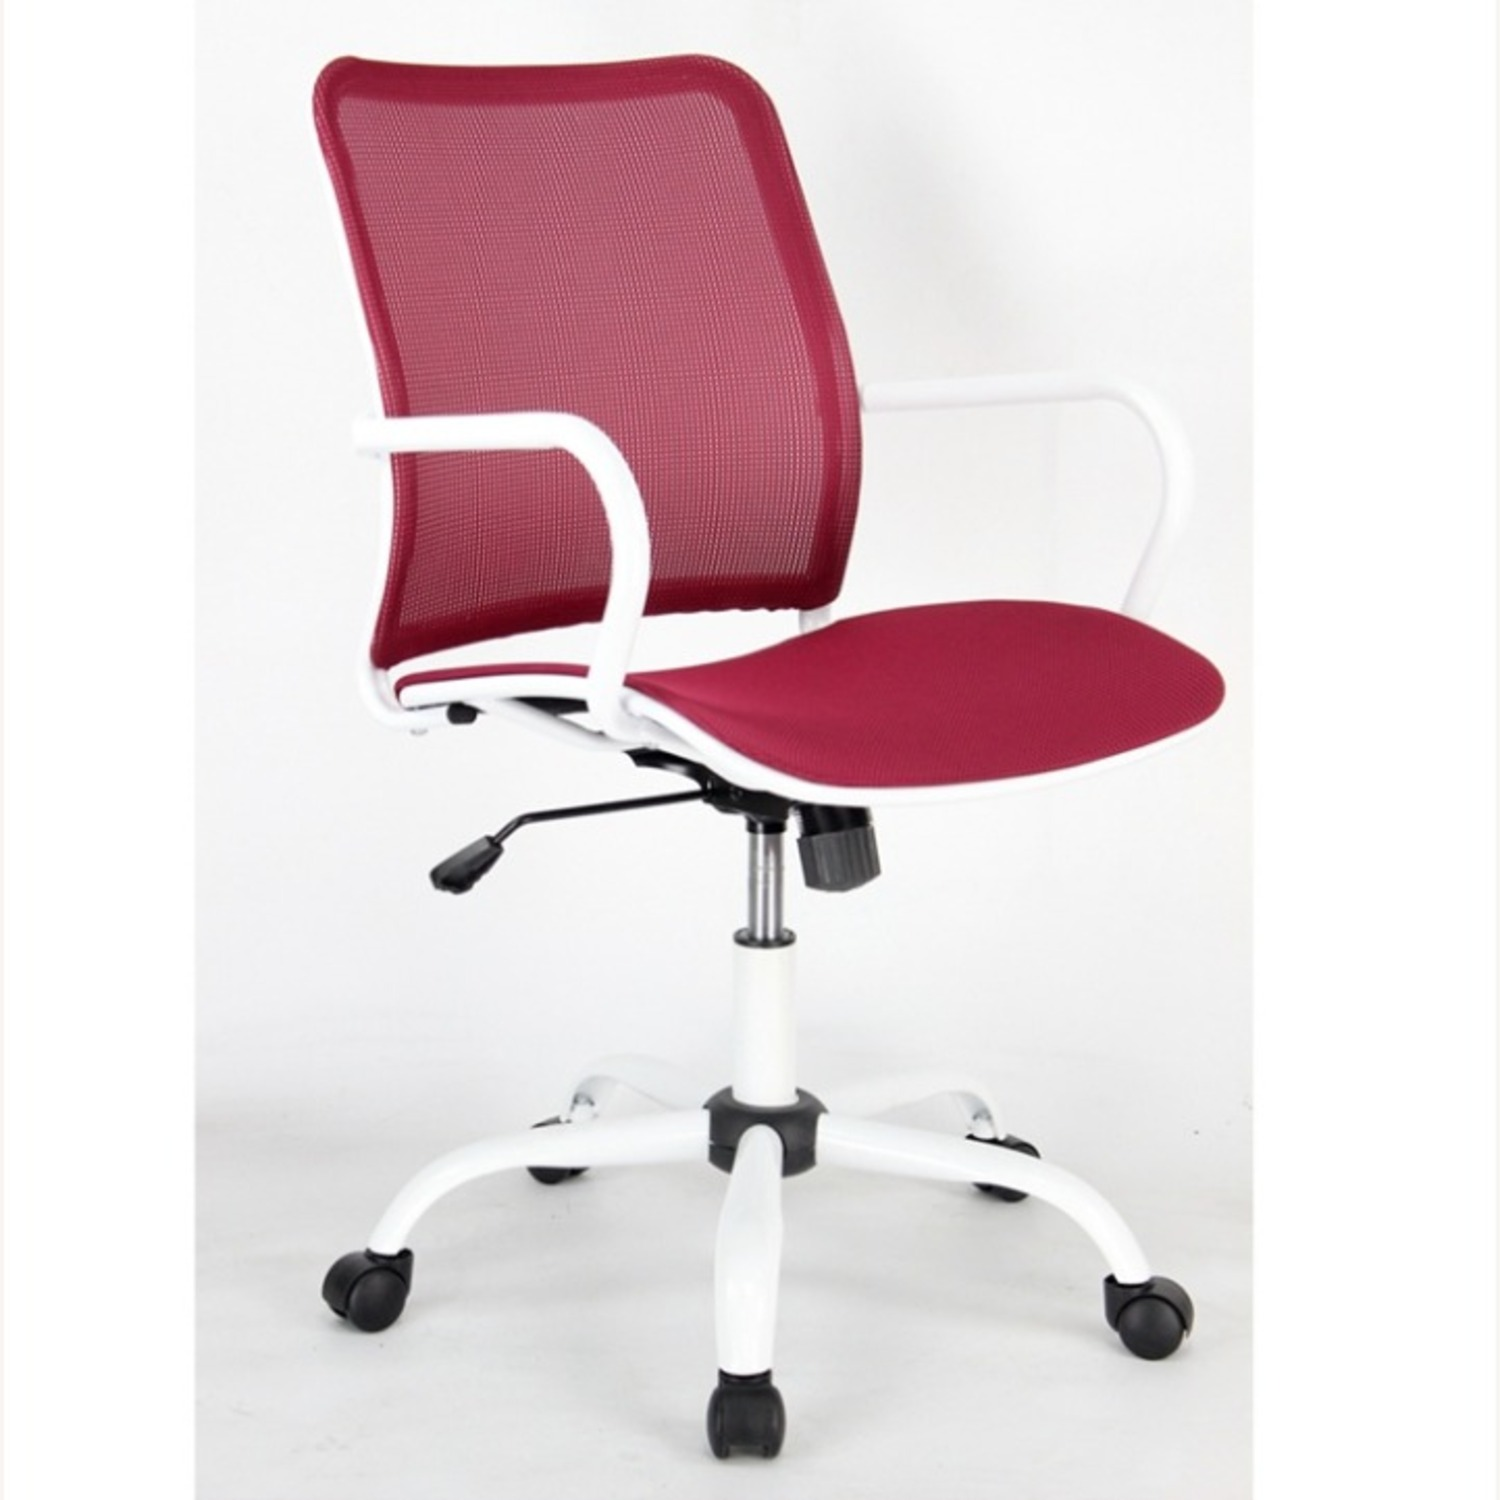 Office Chair In Red Back & Seat Mesh Finish - image-0